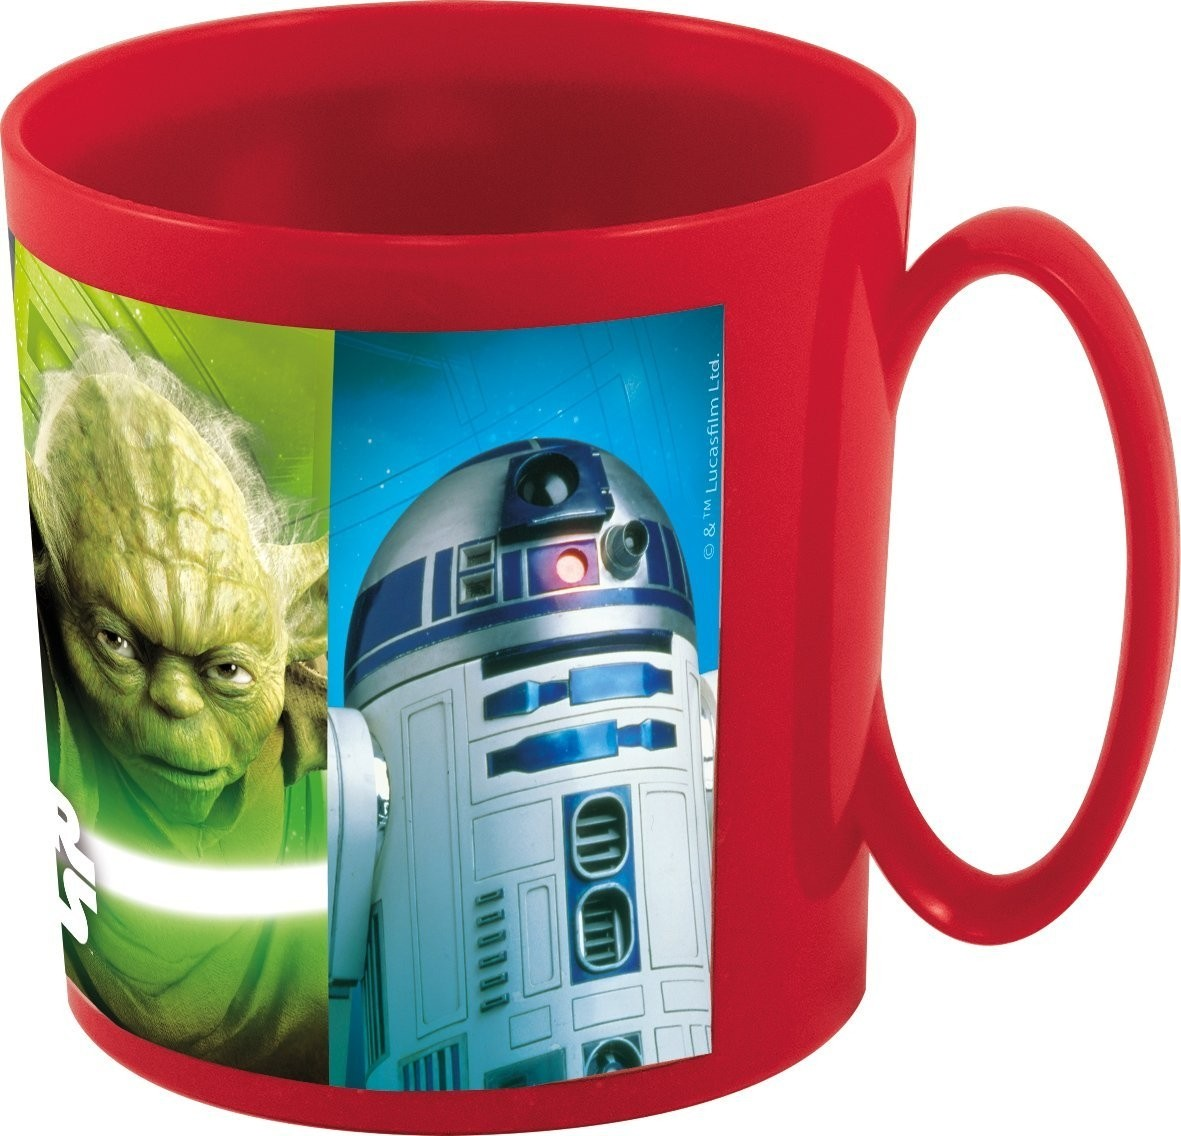 Tazza con manico Star Wars in Polipropilen